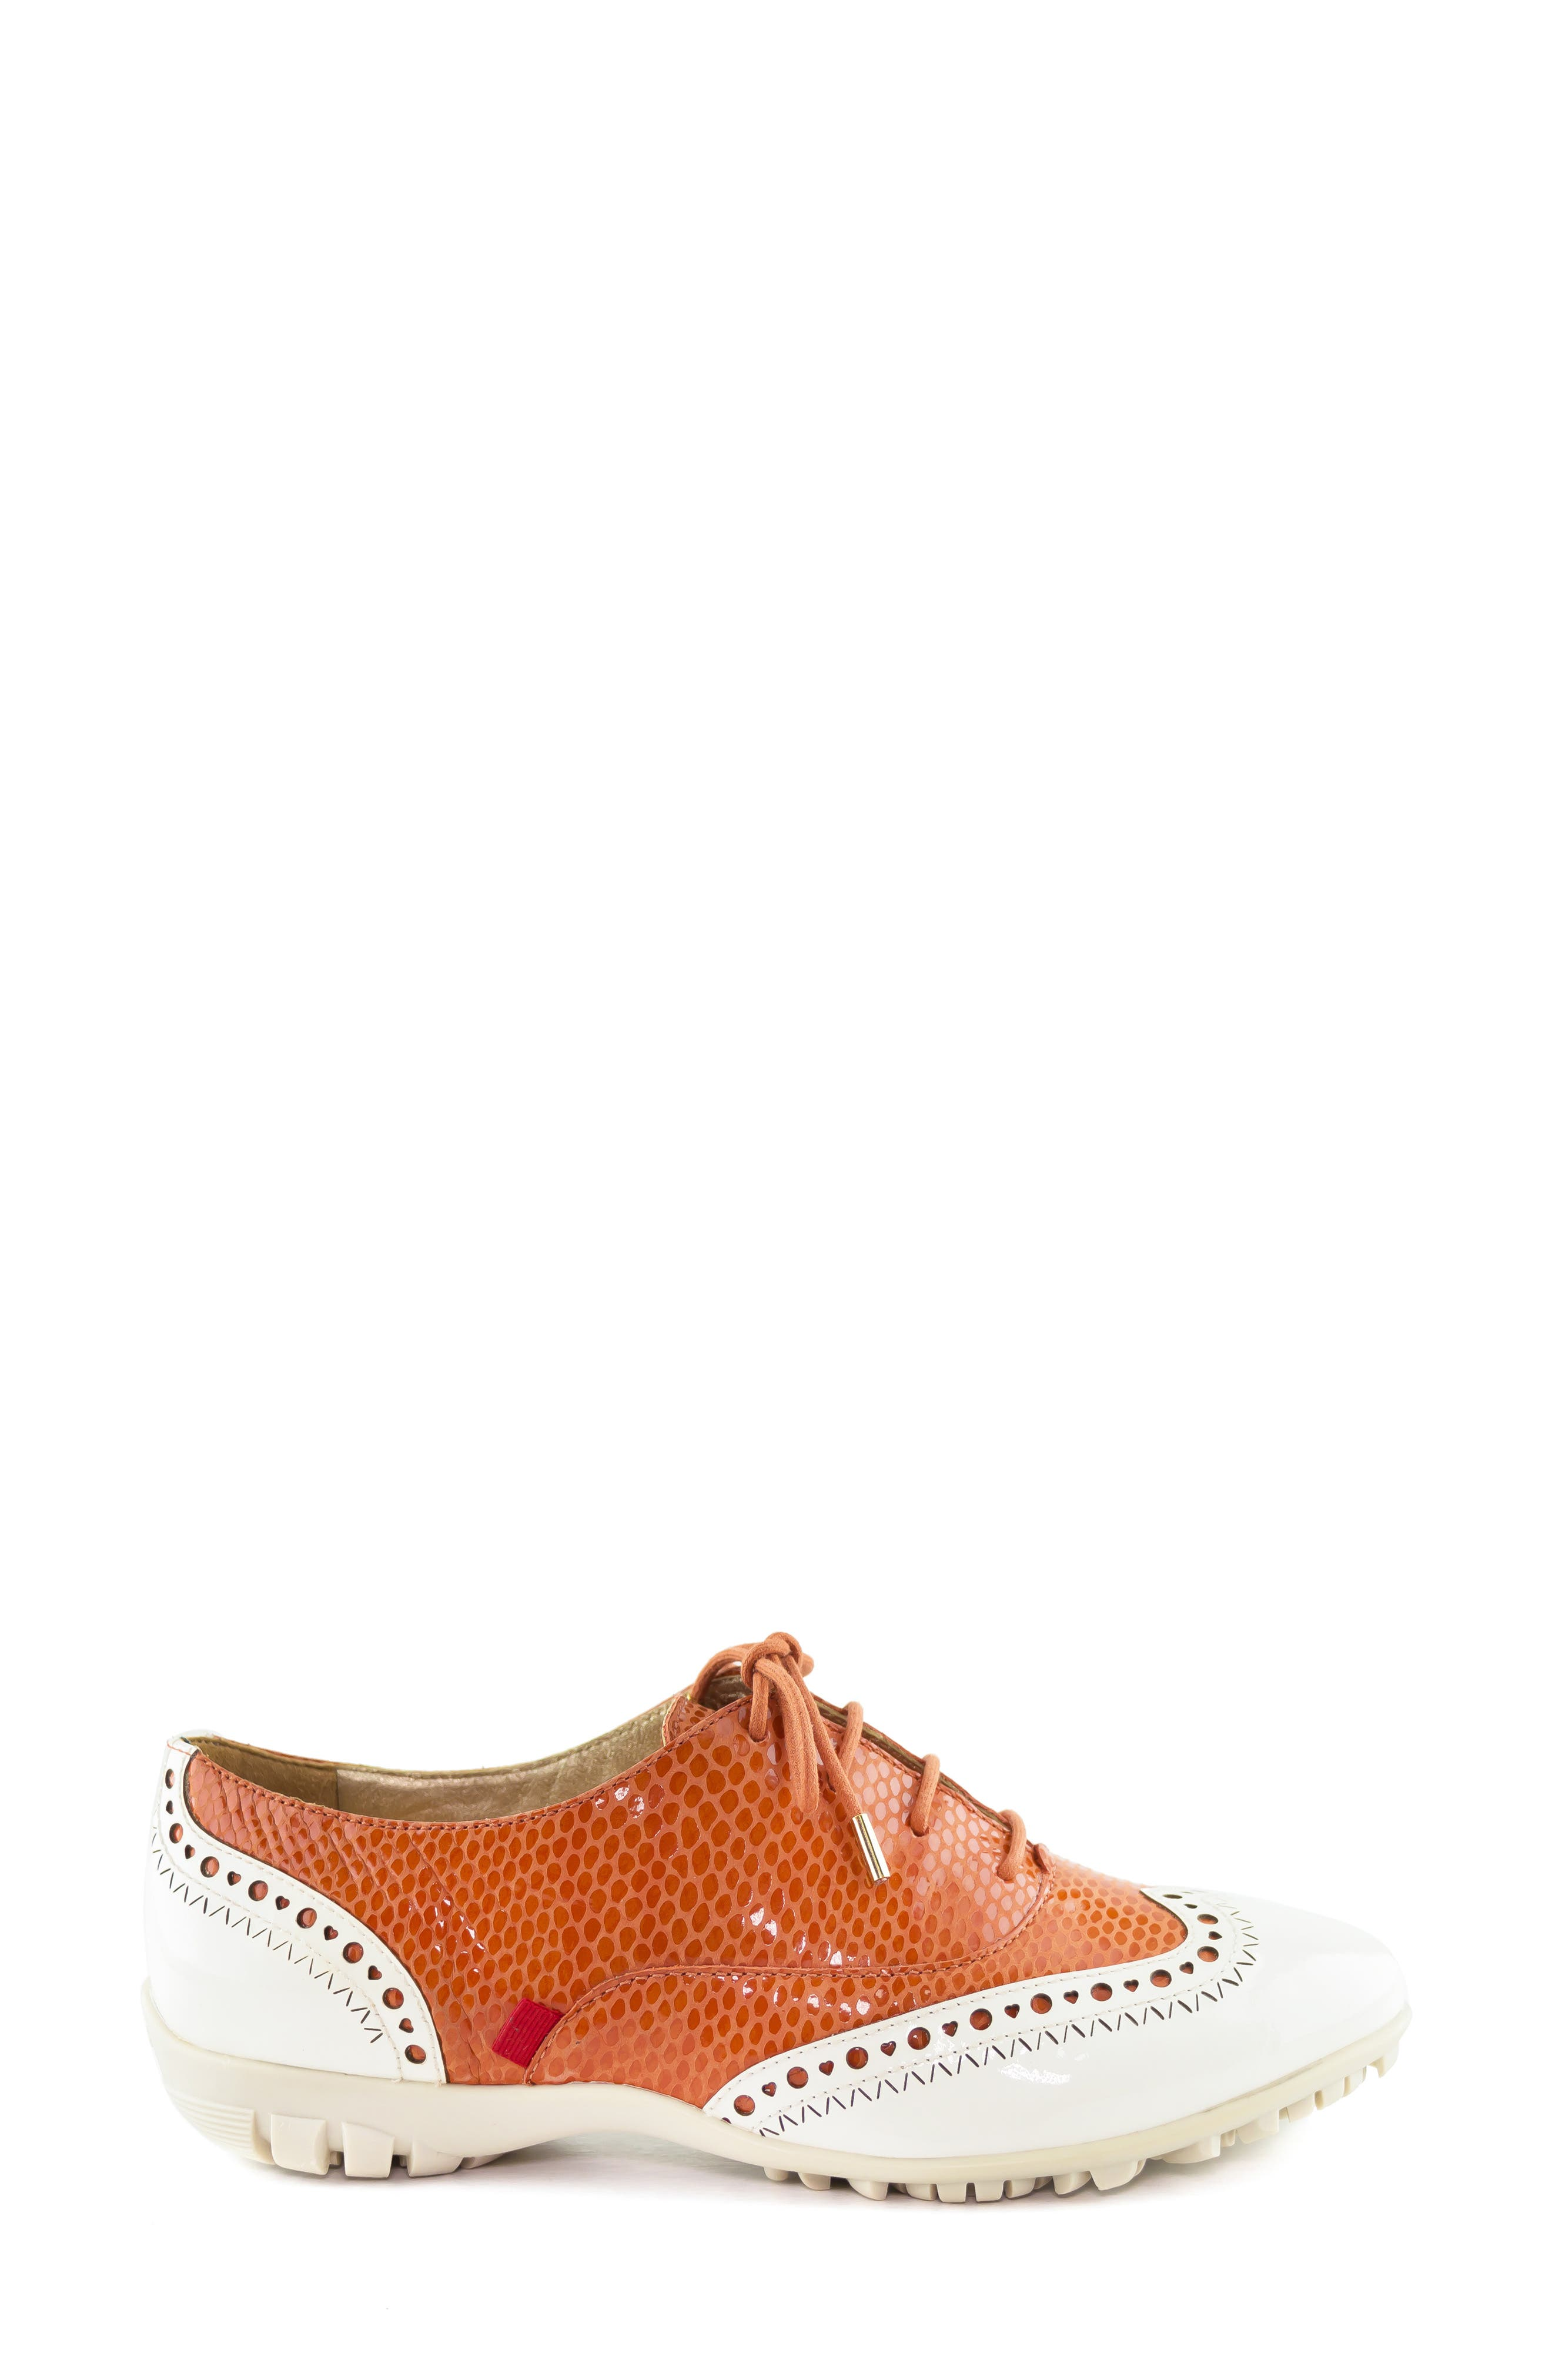 MARC JOSEPH NEW YORK, NYC Golf Loafer, Alternate thumbnail 3, color, CORAL SNAKE PRINT LEATHER